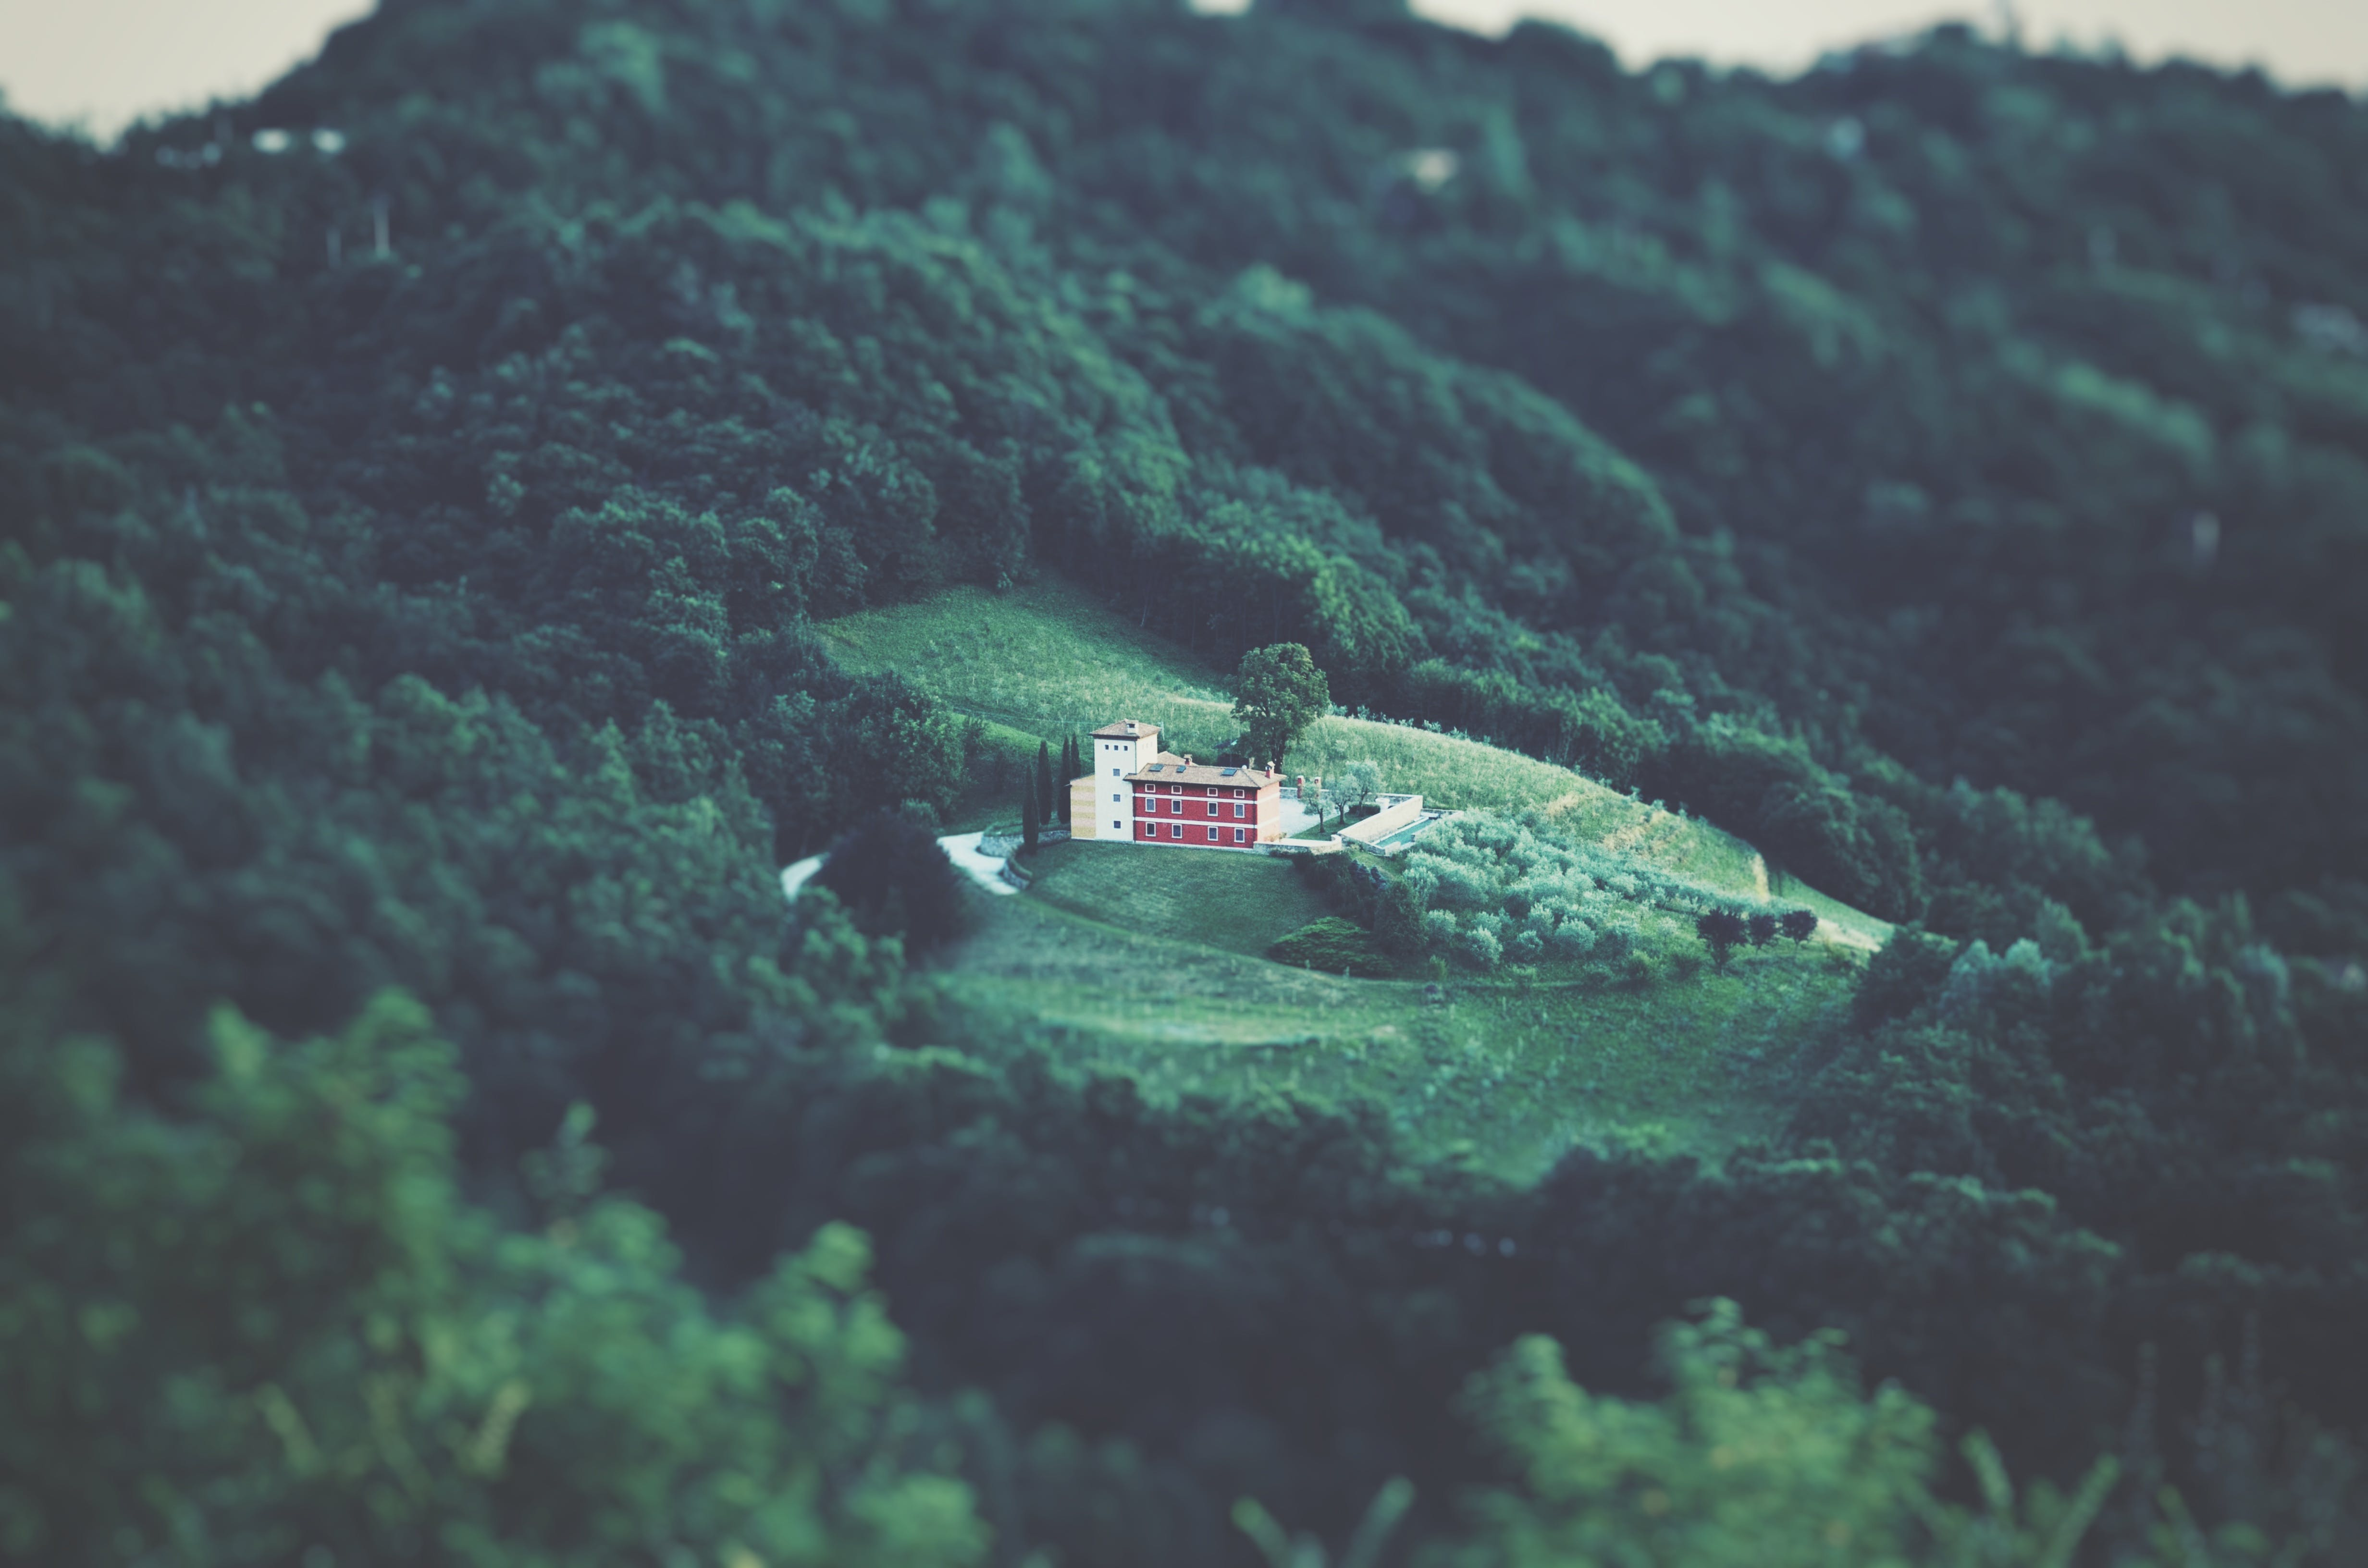 Areal Photography of White Building Surrounded by Forest